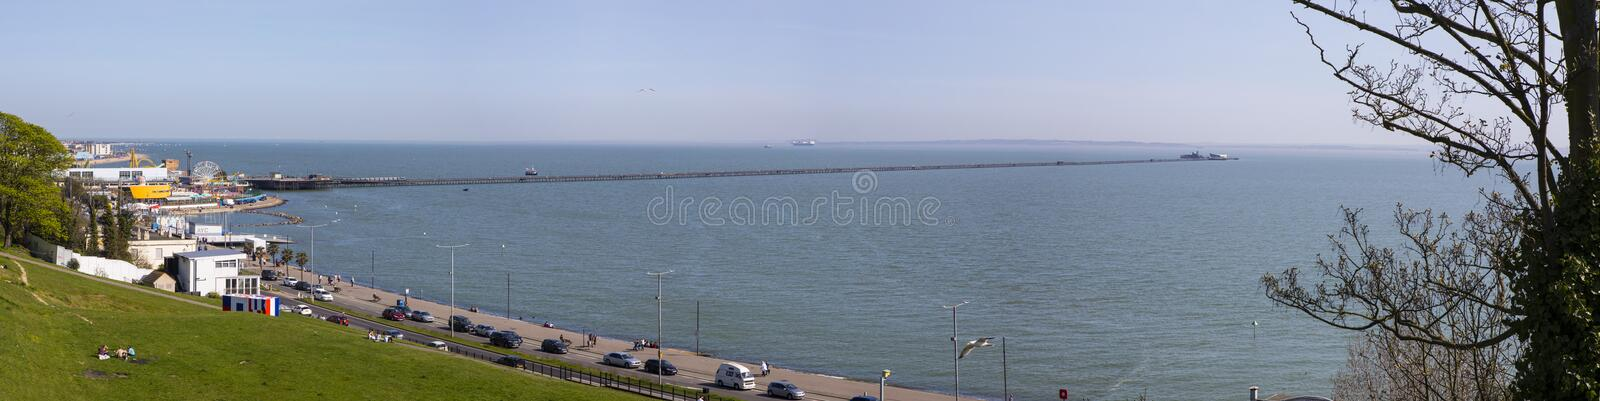 Southend-on-Sea in Essex. SOUTHEND-ON-SEA, ESSEX - APRIL 18TH 2018: A view of the seafront at Southend-on-Sea in Essex, on 18th April 2018. The view takes in the royalty free stock photos